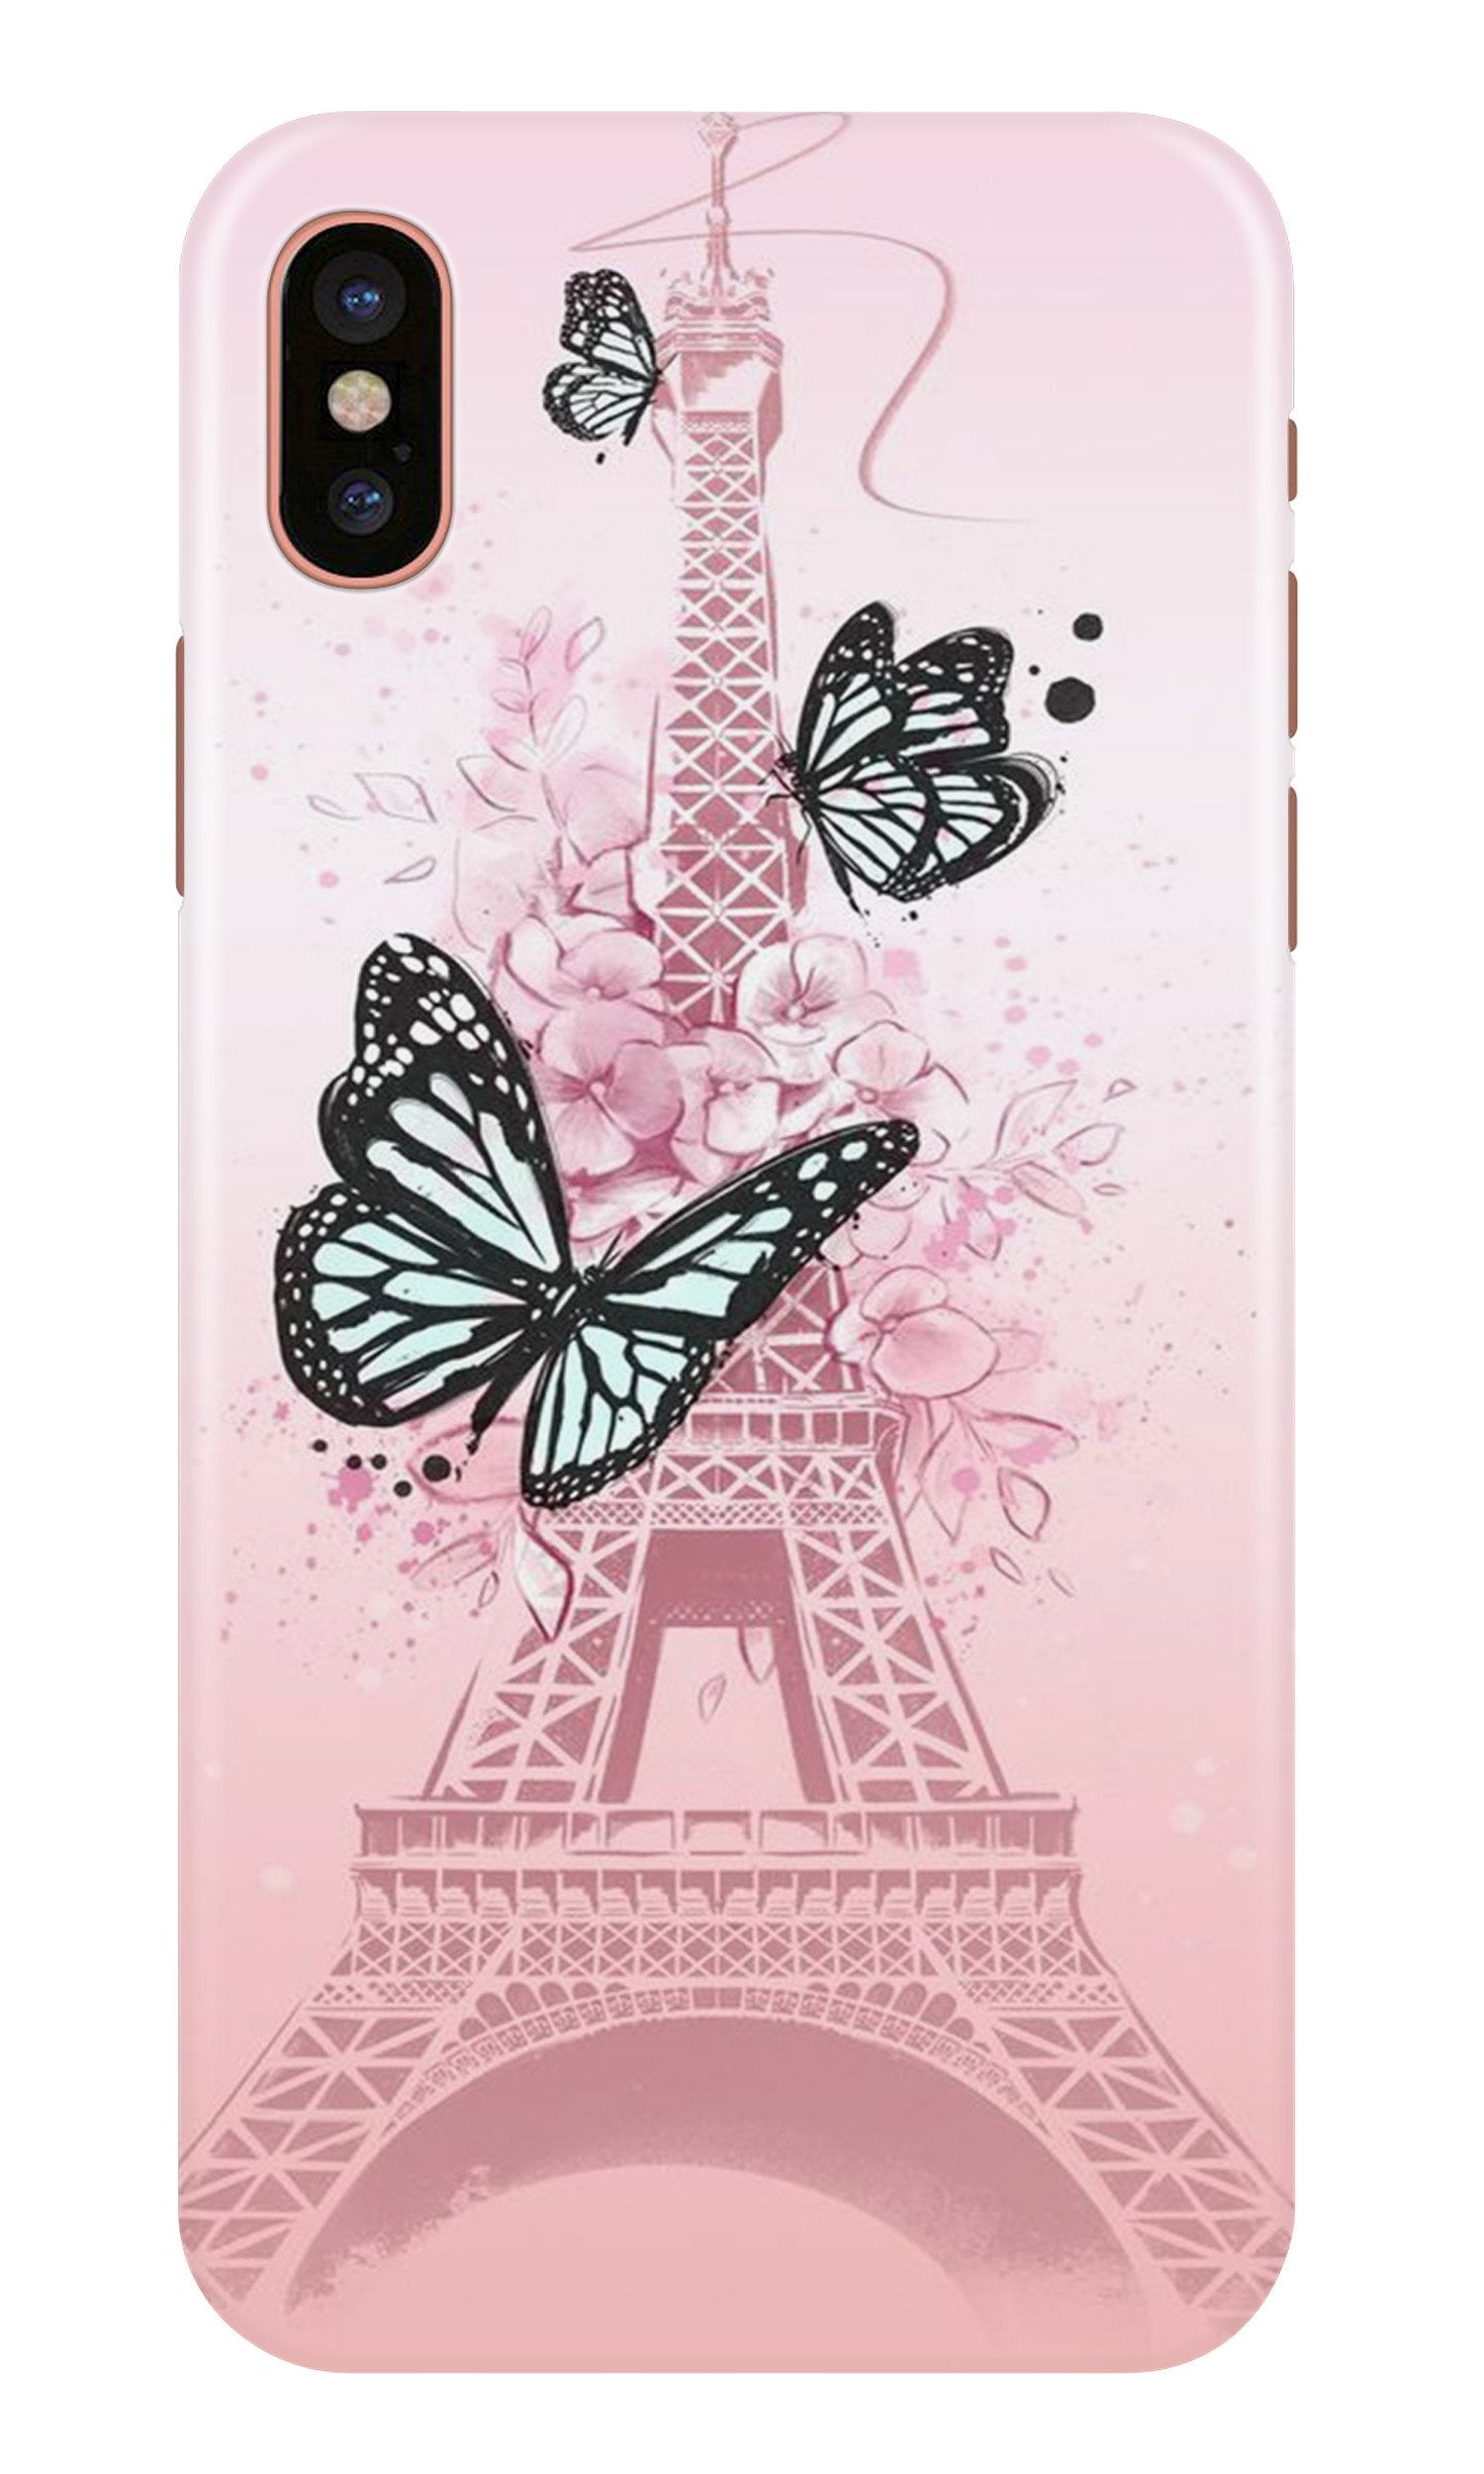 Eiffel Tower Case for iPhone Xr (Design No. 211)